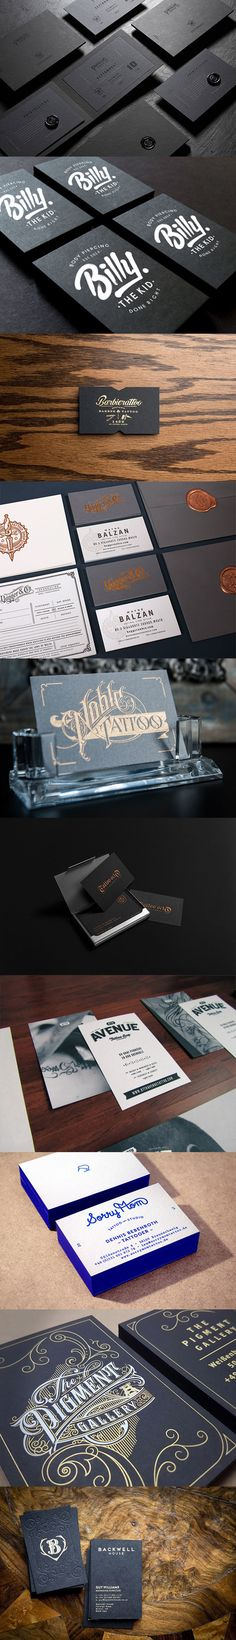 So in this post I have collected 18 creative, inspiring and truly unique tattoo business cards that stretch the limits of design and imagination. Sorry Mom Tattoo, Letterpress Business Cards, Brand Identity Design, Grafik Design, Creative Studio, Creative Cards, Personal Branding, Business Card Design, Connection